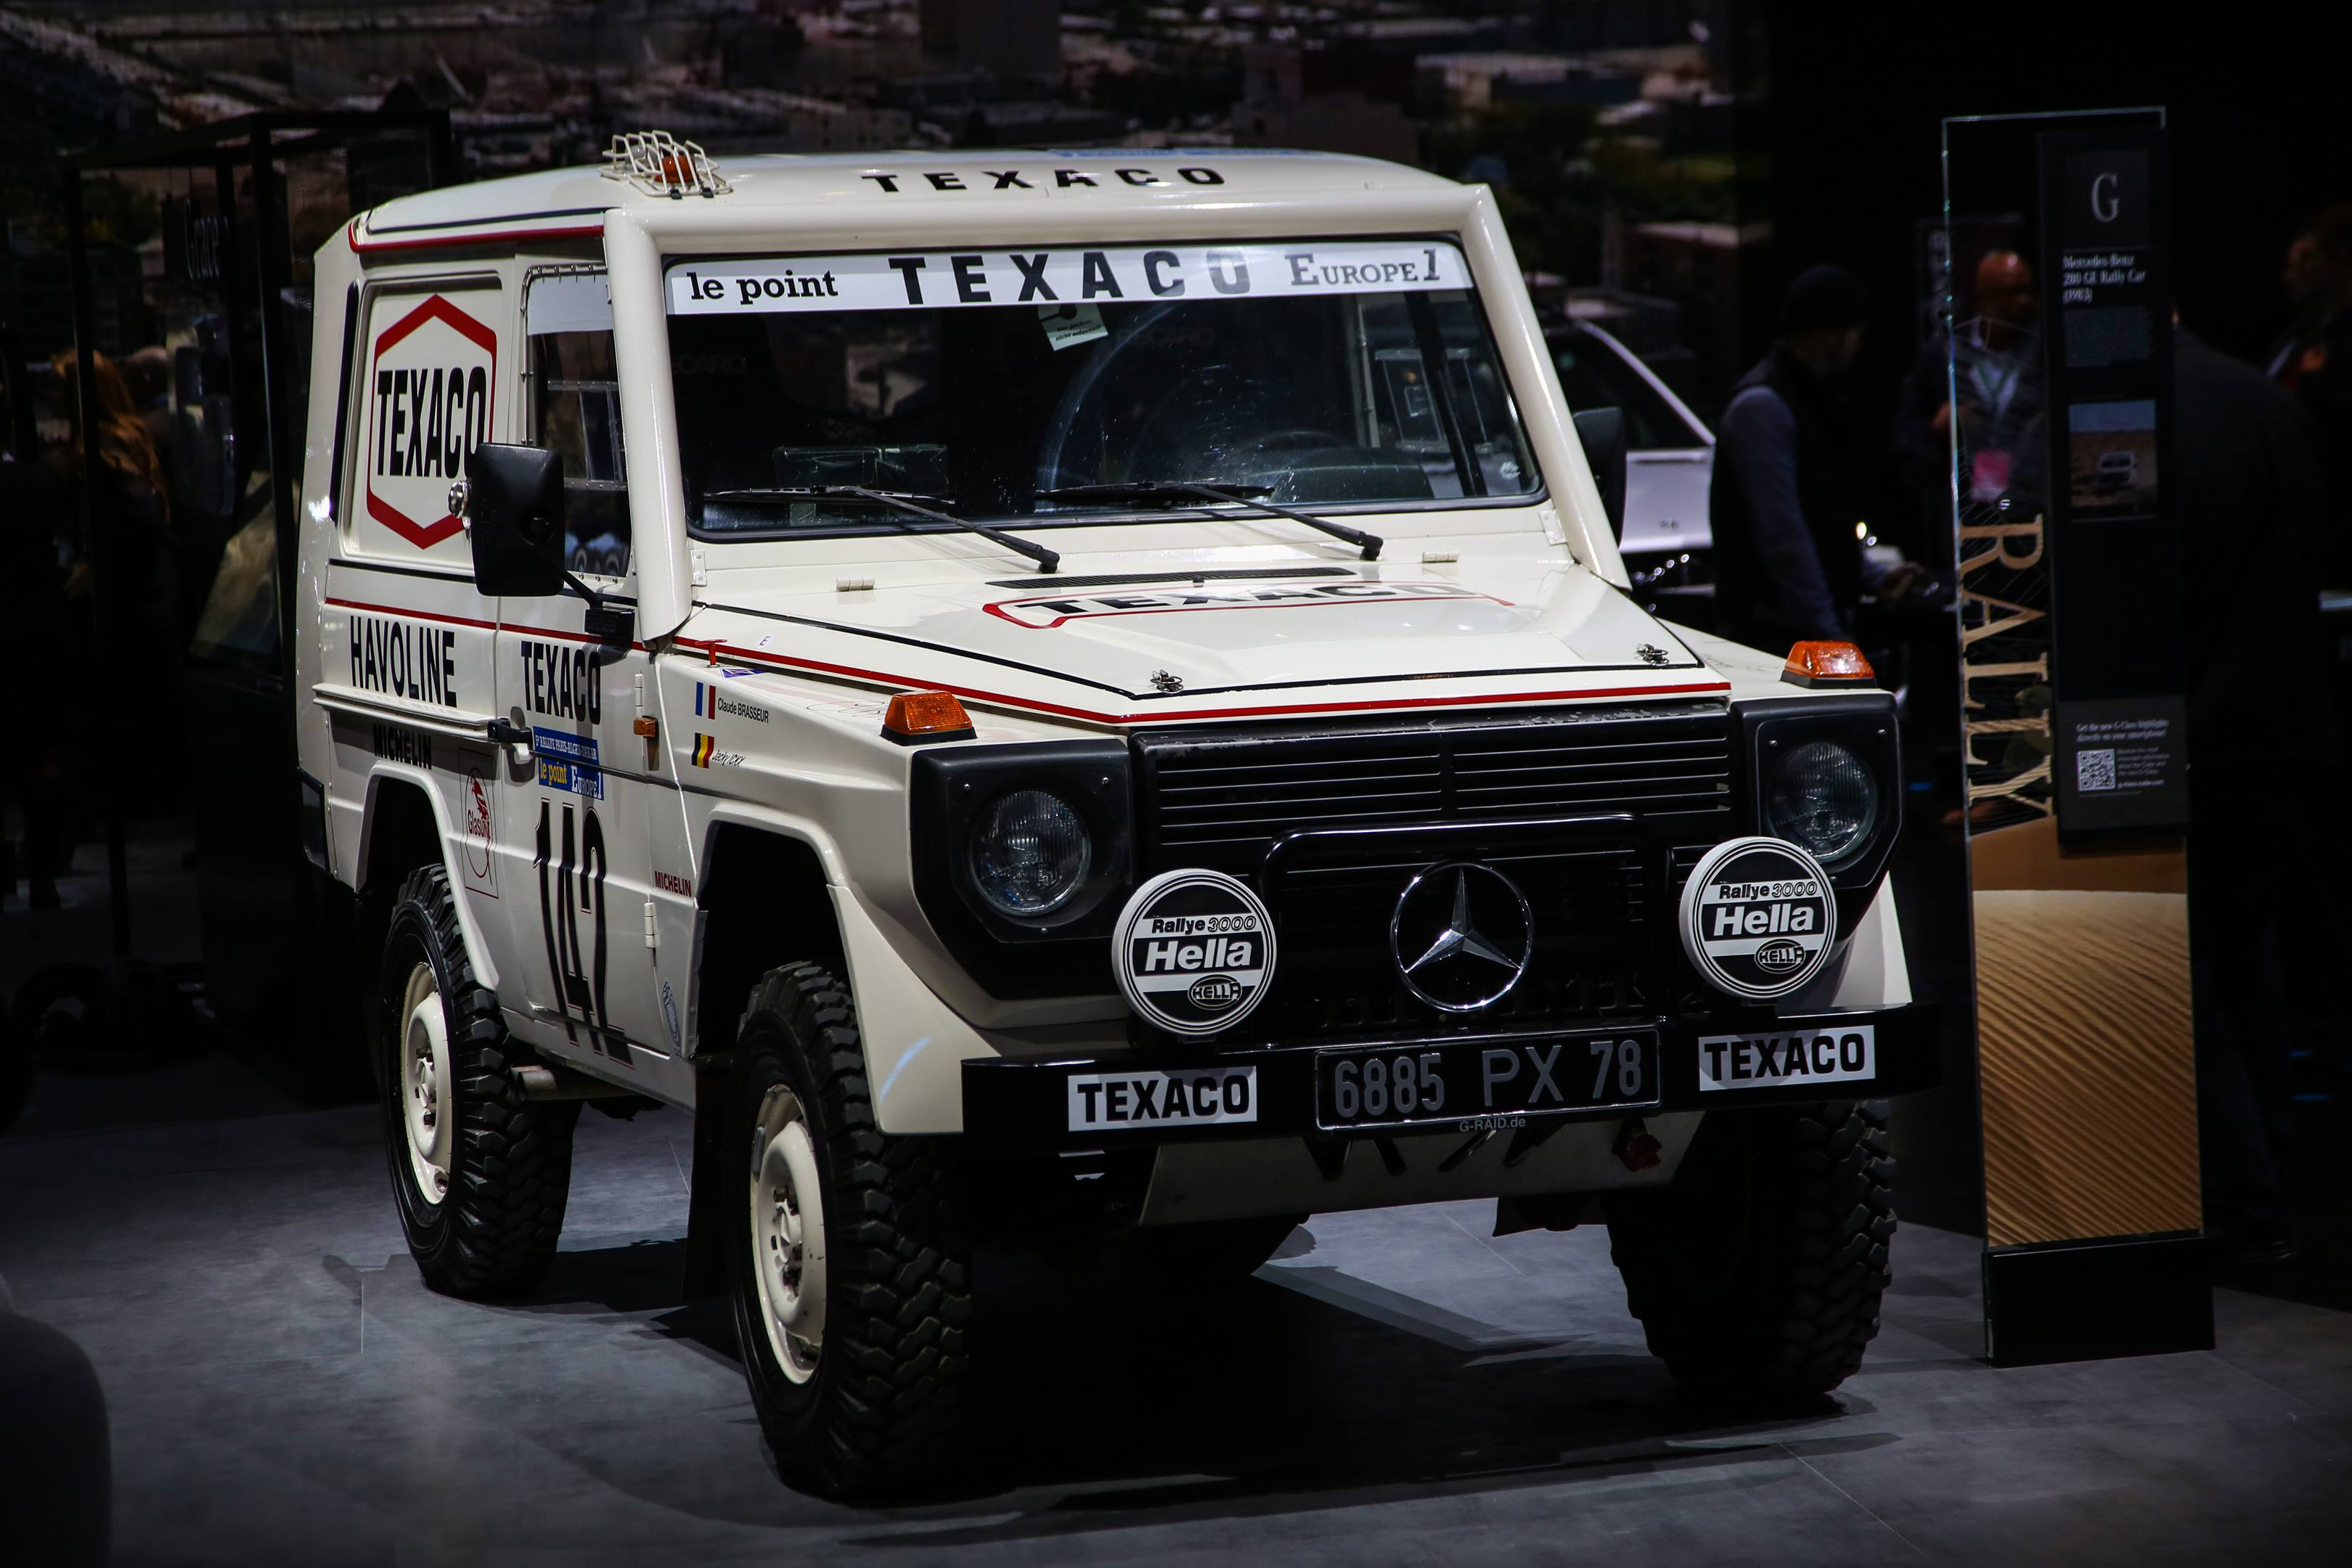 1983 Mercedes-Benz 280 GE Paris Dakar Rally